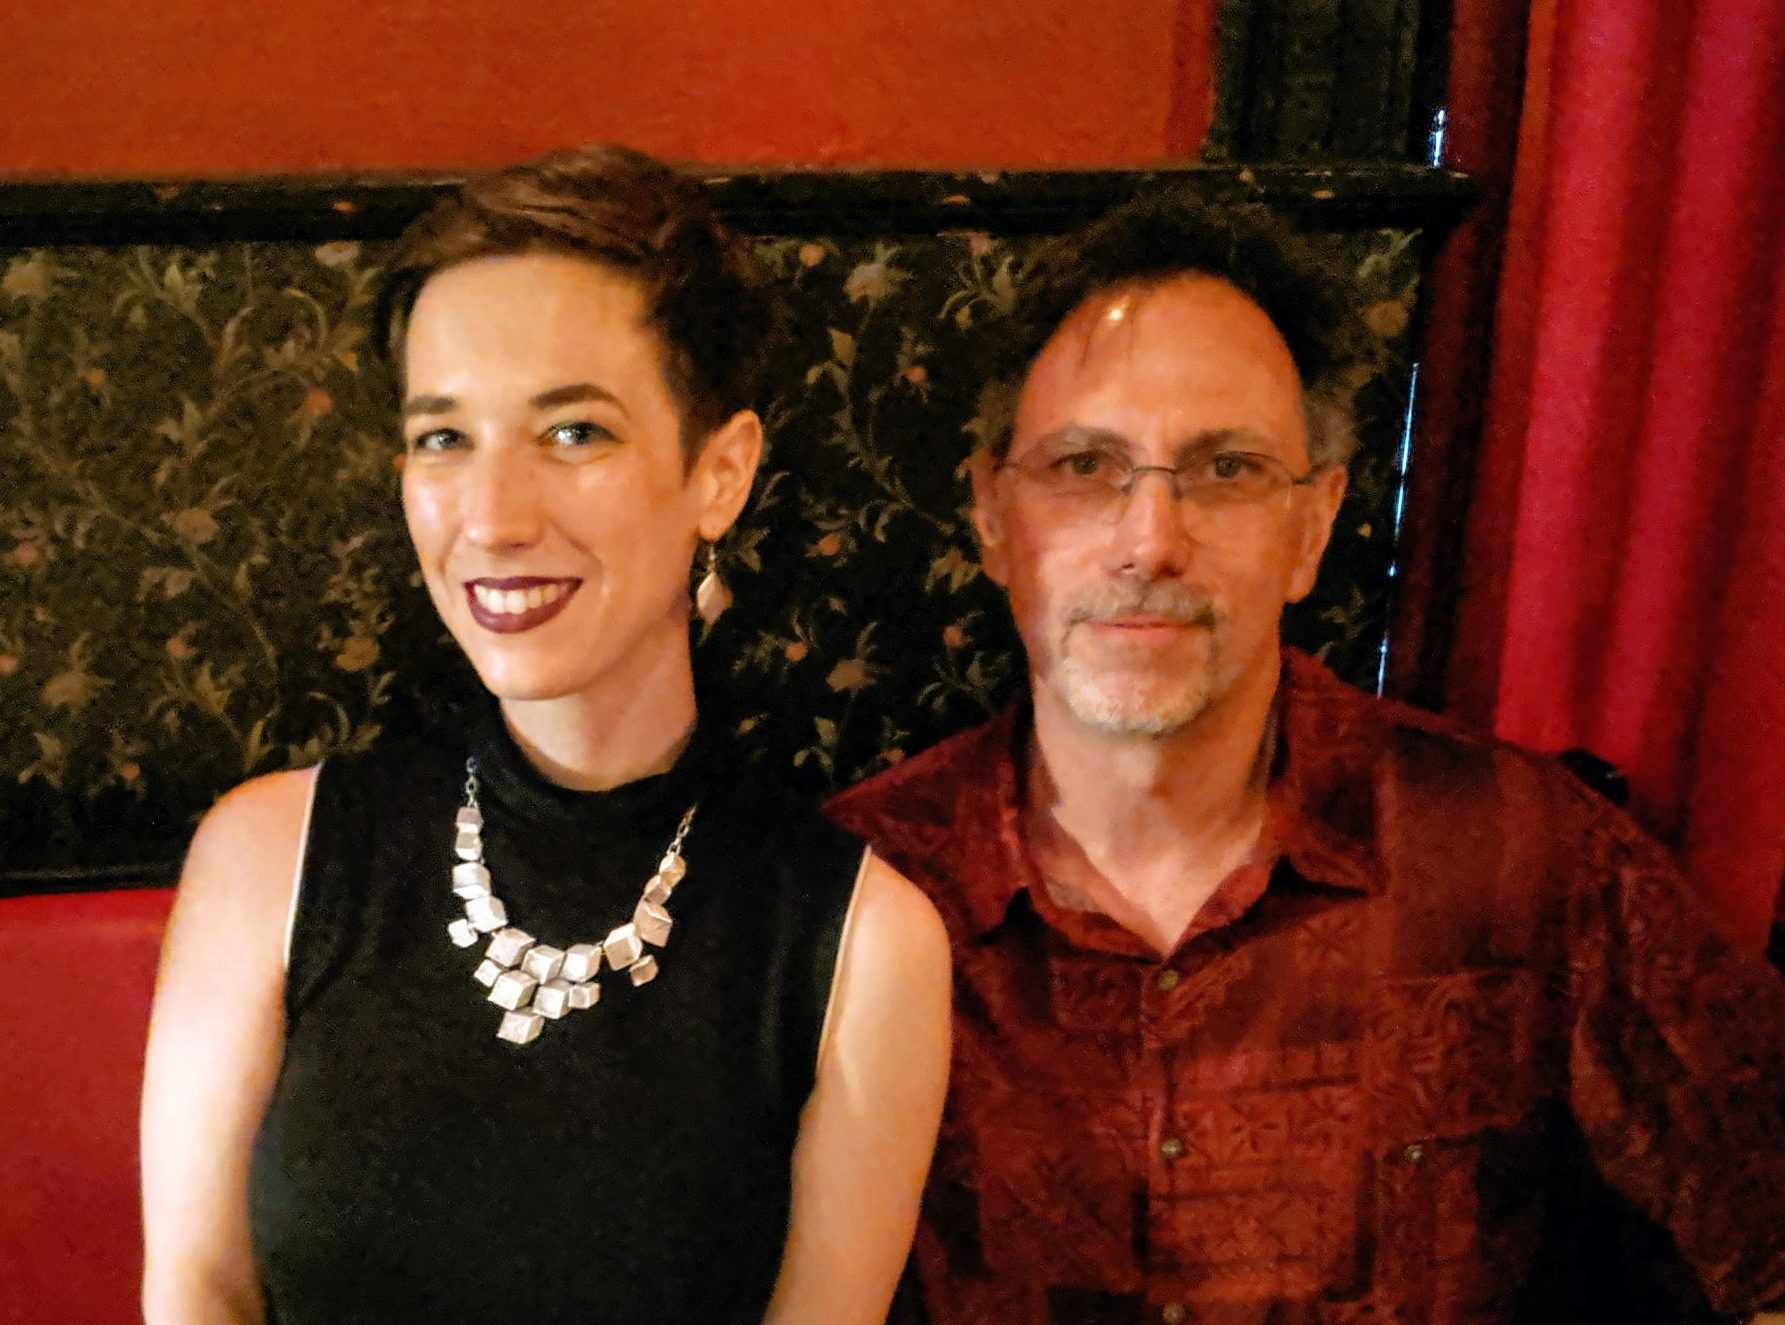 Photos from Aug 21st, with Paul Witcover & Lara Elena Donnelly